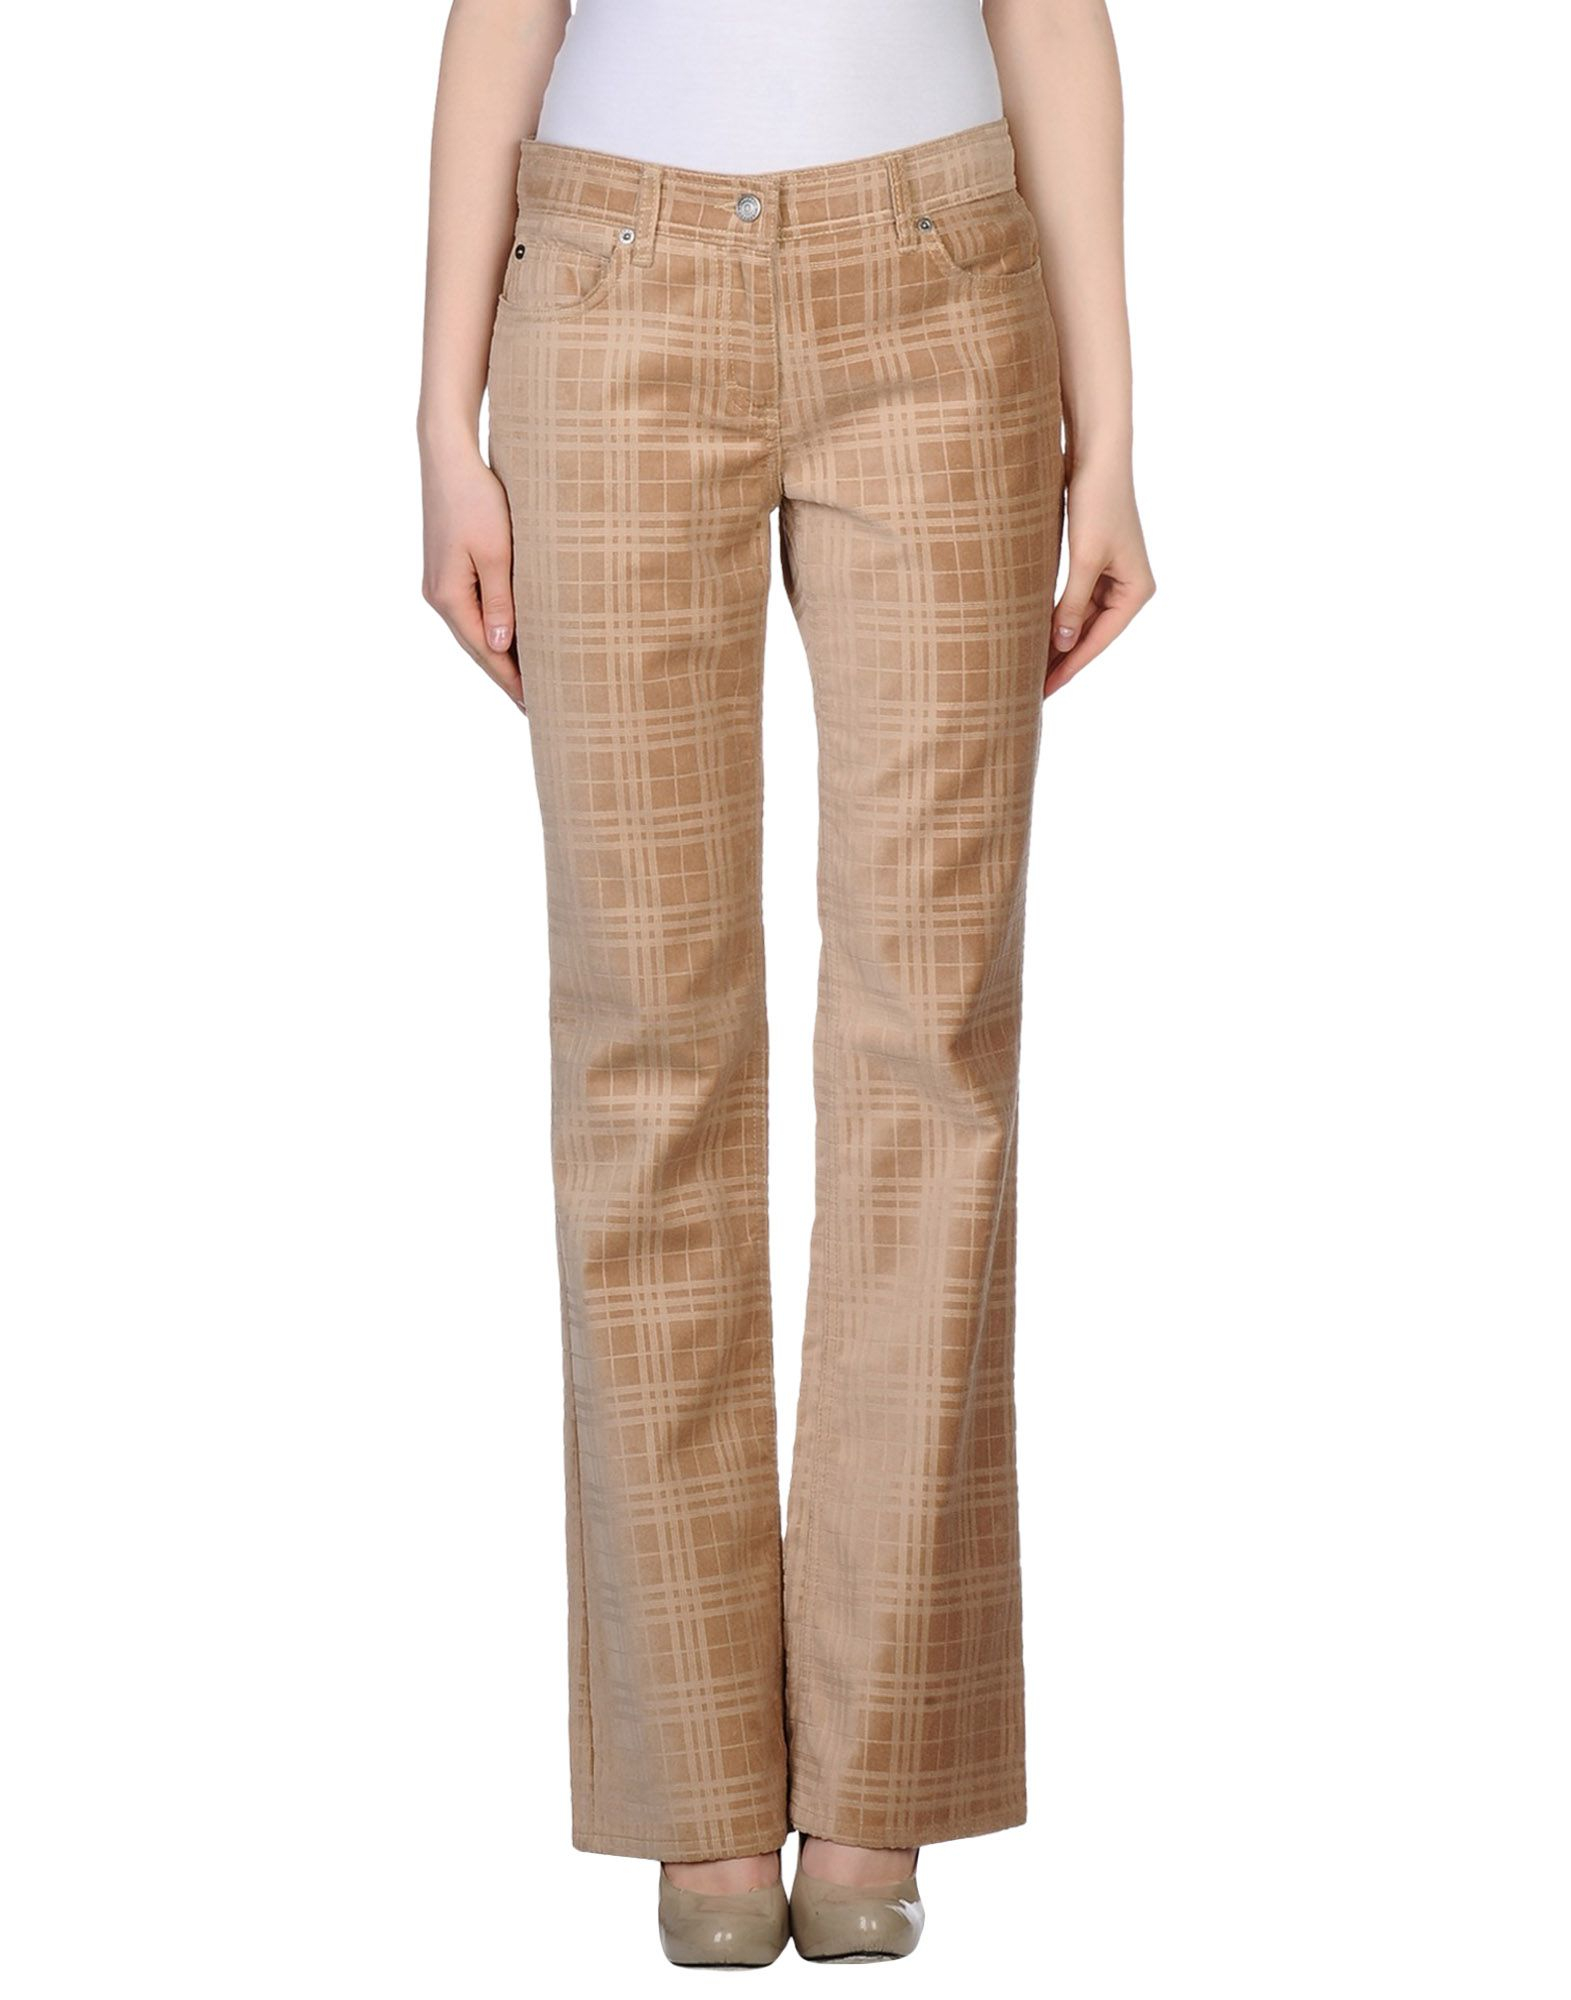 Burberry Casual Trouser in Natural